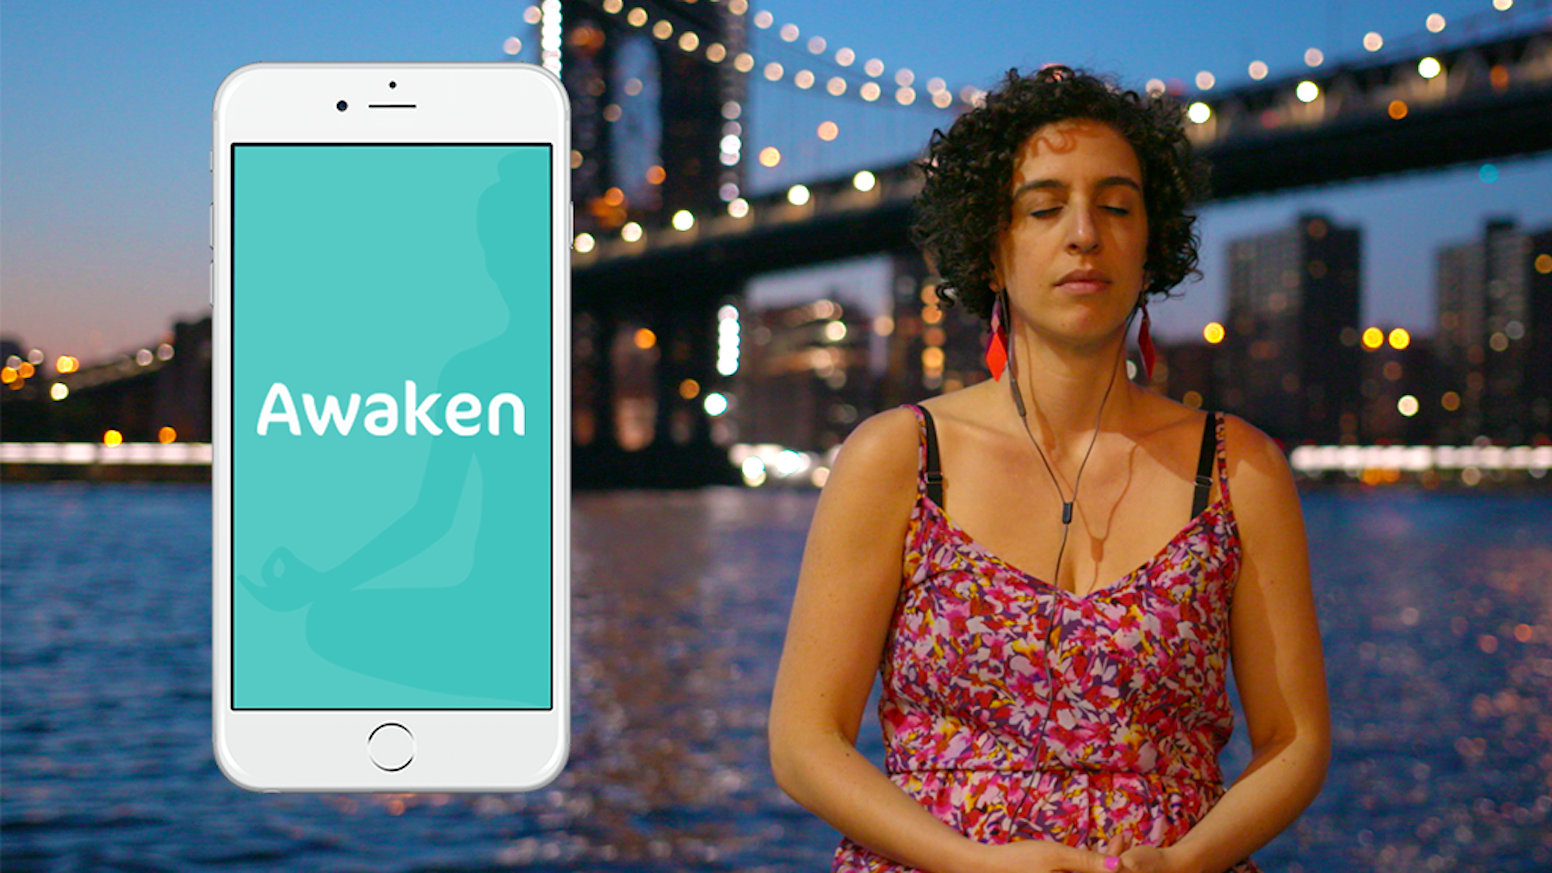 A transformative meditation app that will both reveal and reprogram your societal conditioning, featuring renowned mindfulness teachers